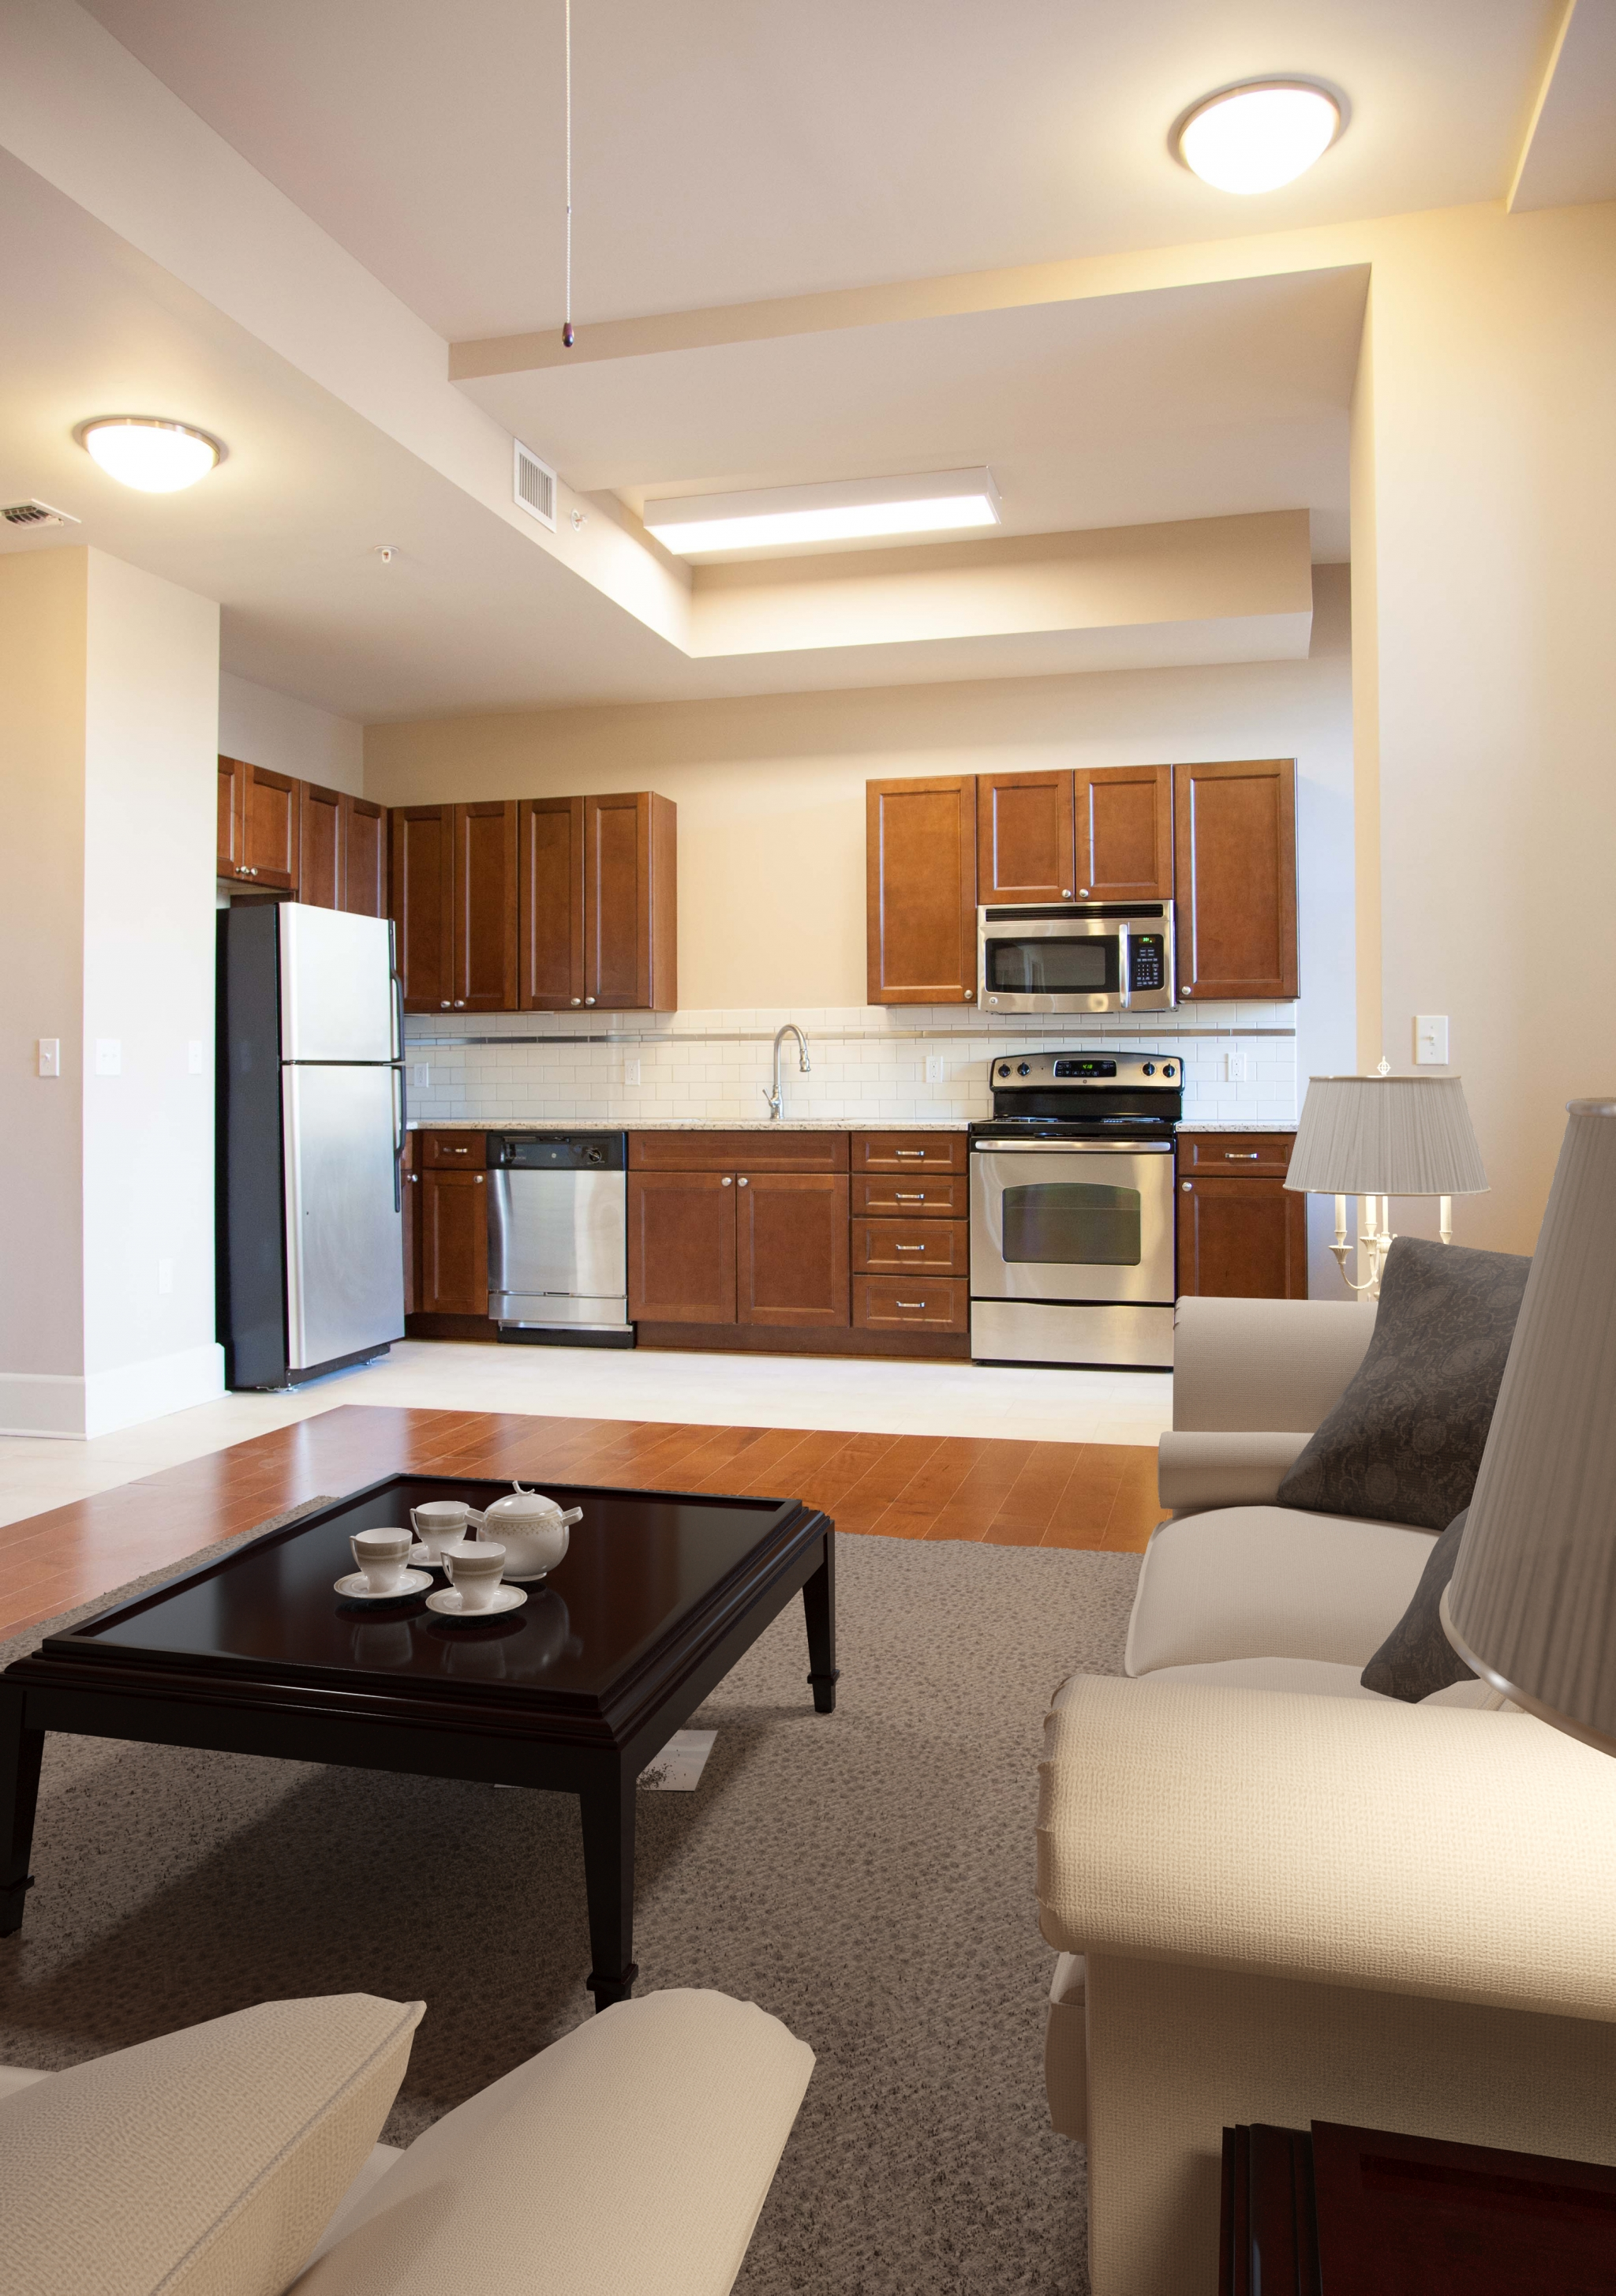 Image of GE Stainless Steel Kitchen Appliances for Hibernia Tower